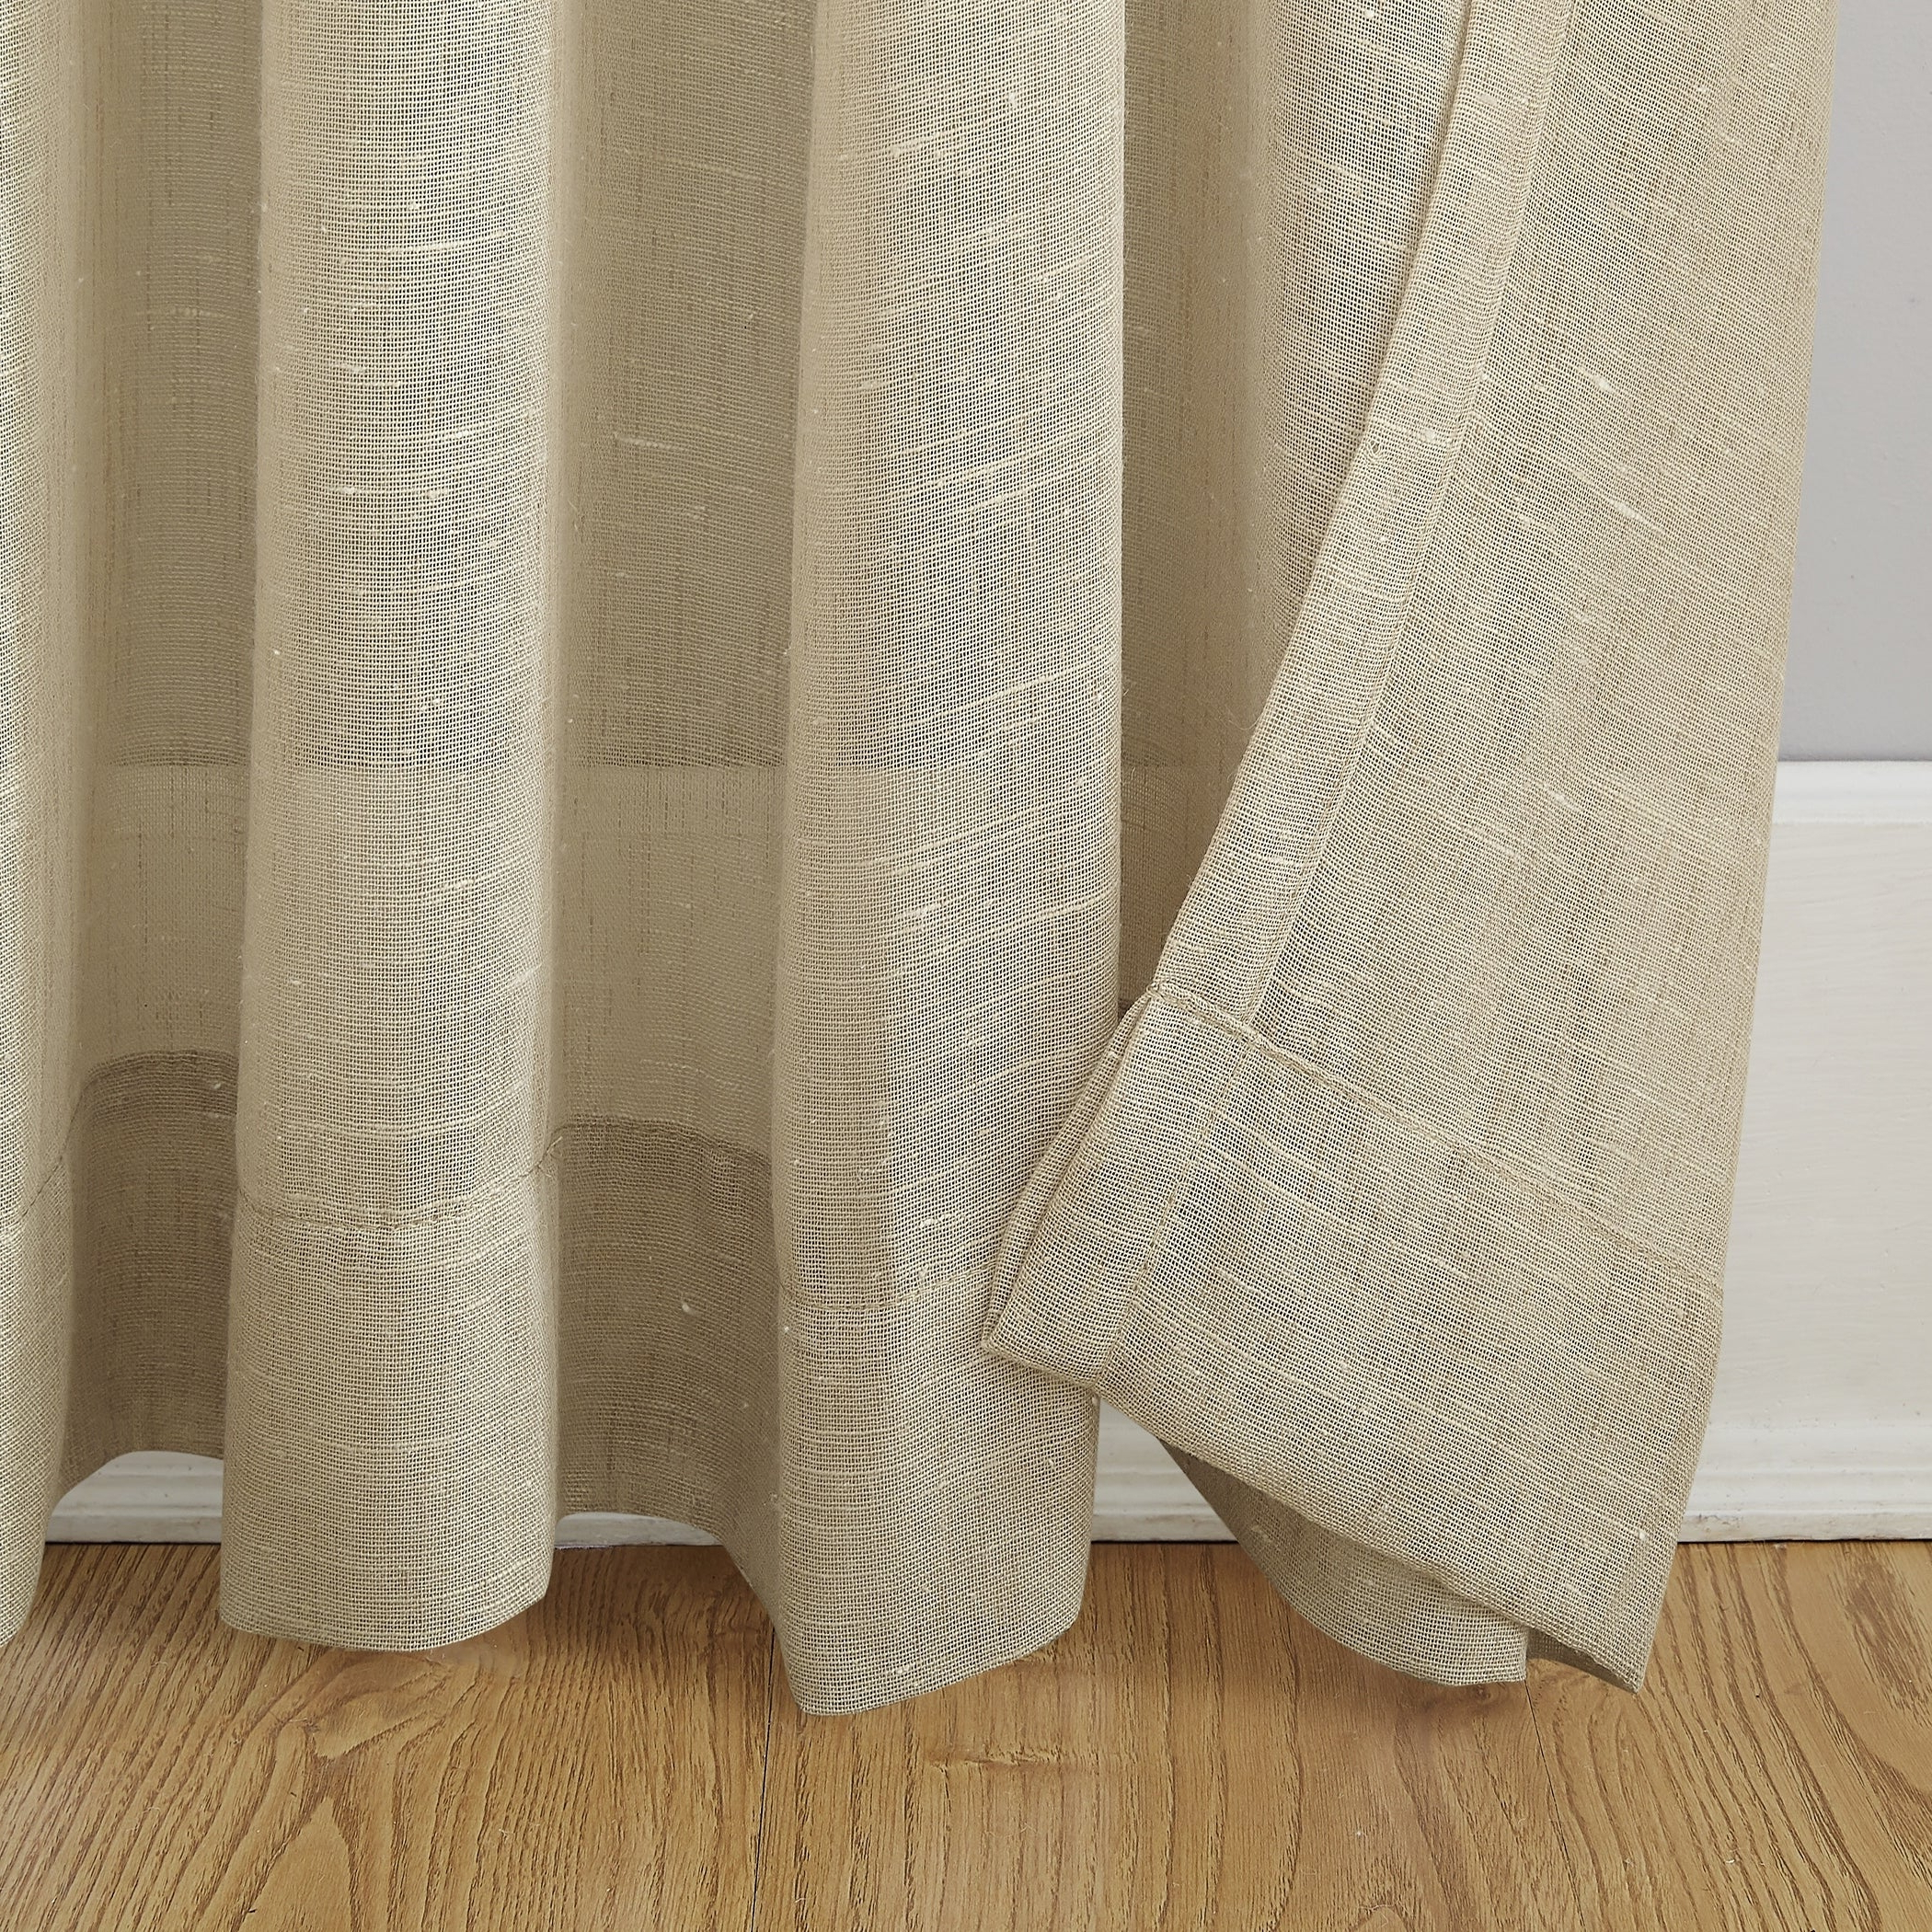 Archaeo Slub Textured Linen Blend Grommet Top Curtain Regarding Popular Archaeo Slub Textured Linen Blend Grommet Top Curtains (View 4 of 20)